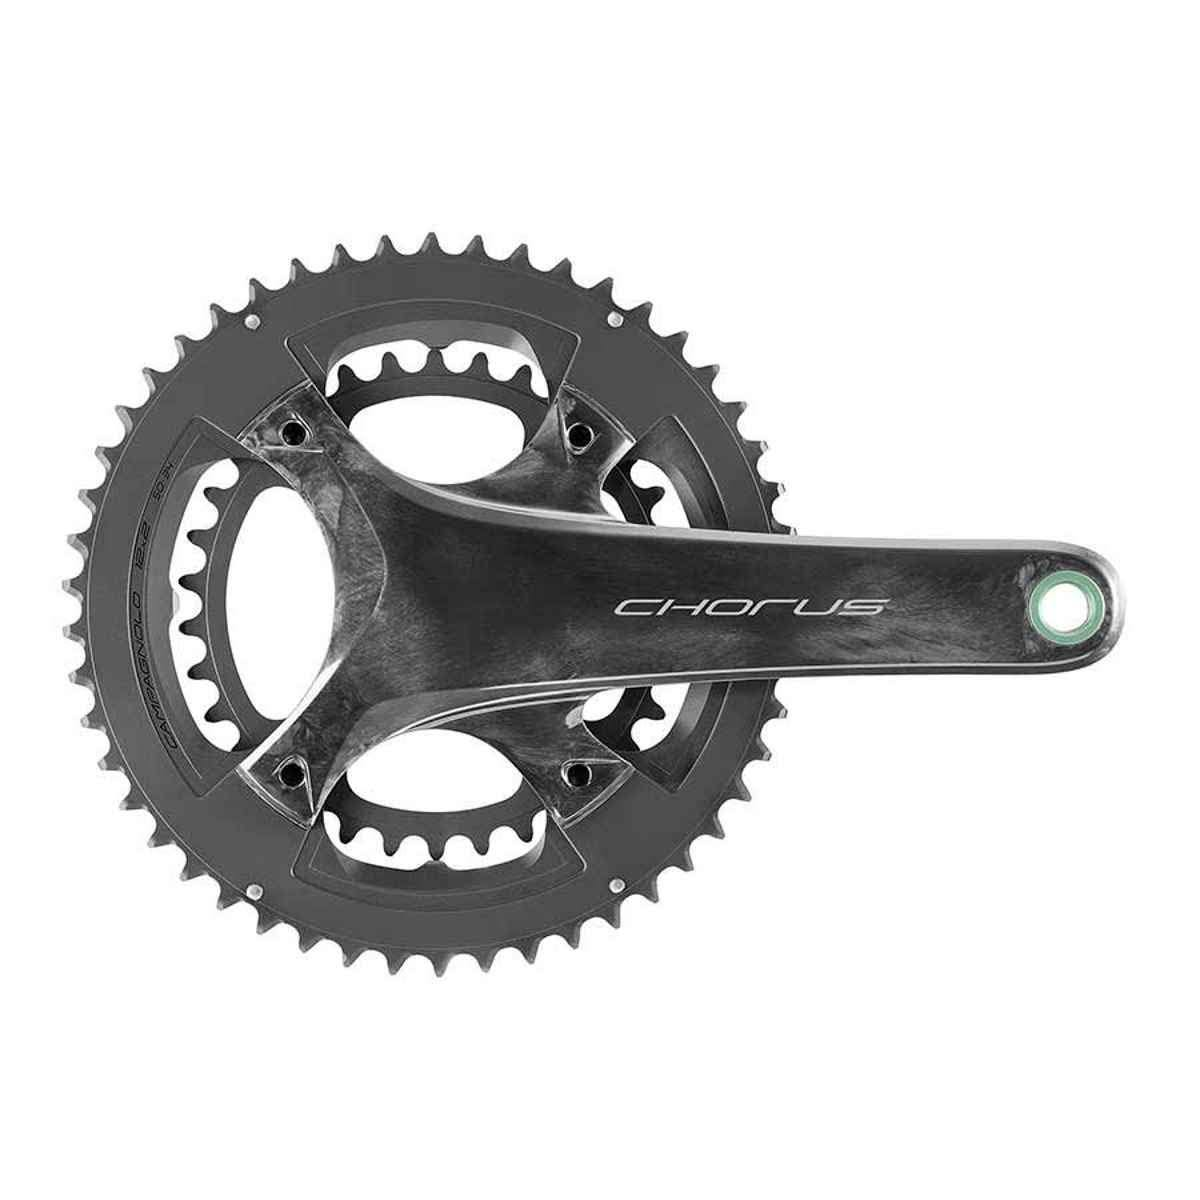 Campagnolo Chorus Crankset 12 Speed 172.5mm 34x50T